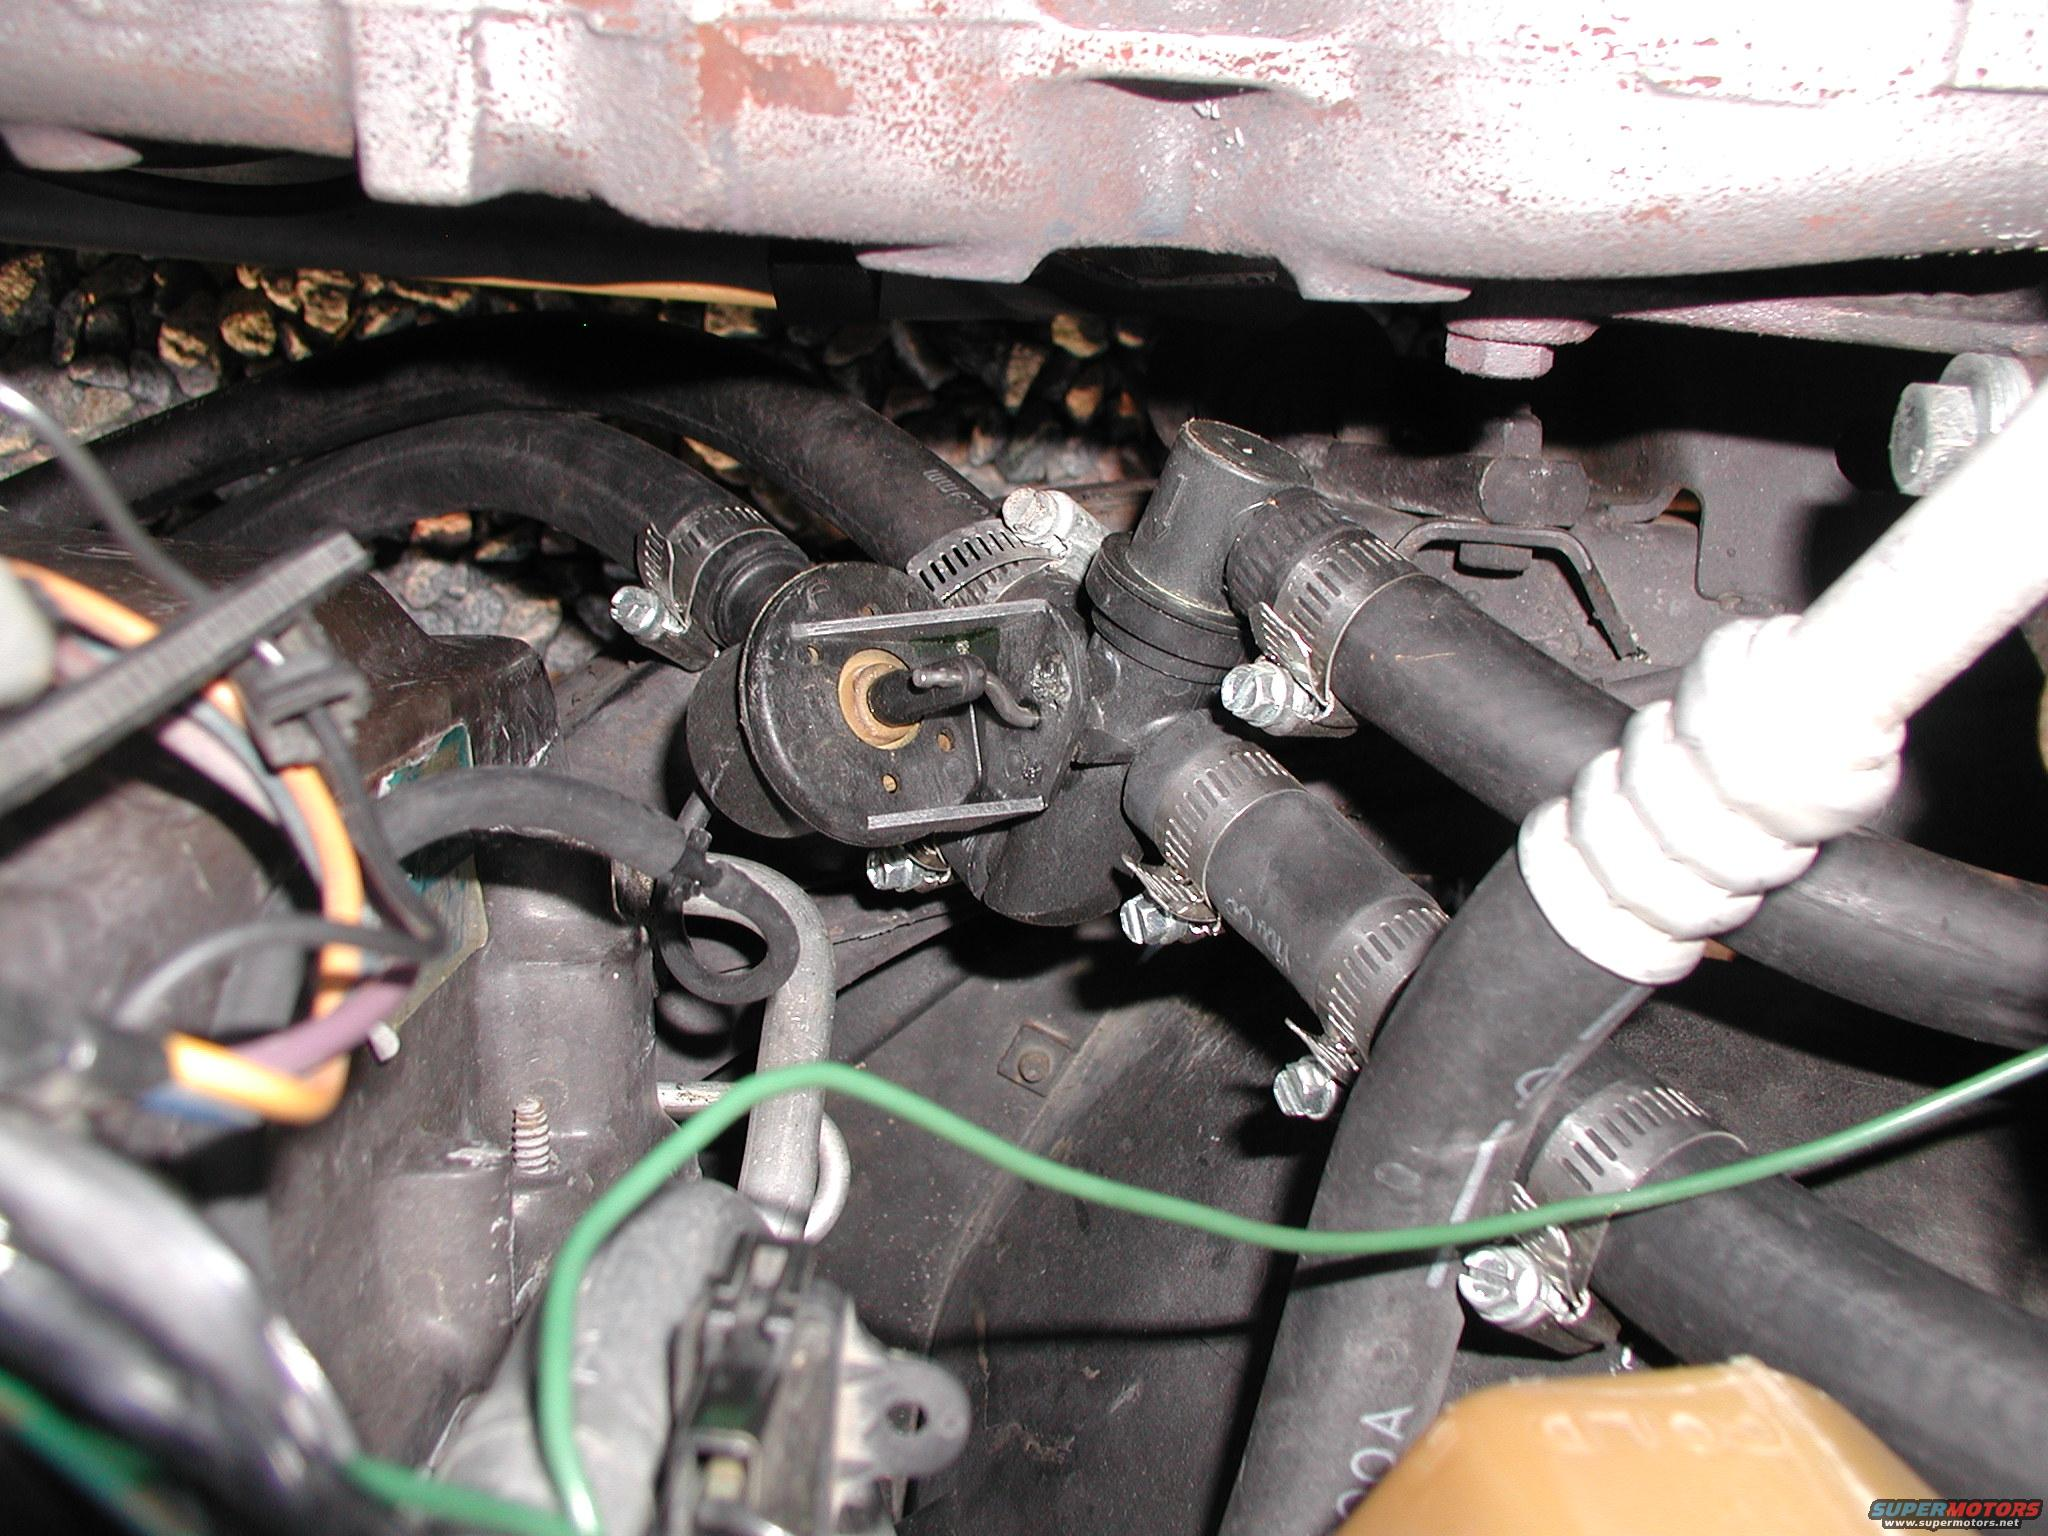 Bank 1 Sensor 2 Location Gmc moreover Chevy Heater Valve Location likewise Location Fuel Filter On 2003 Mazda Mpv in addition Wiring Diagram For Wiper Motor 79 Corvette moreover 1997 Honda Civic Cooling Fan Wiring Circuit Diagram. on gmc jimmy wiring diagram